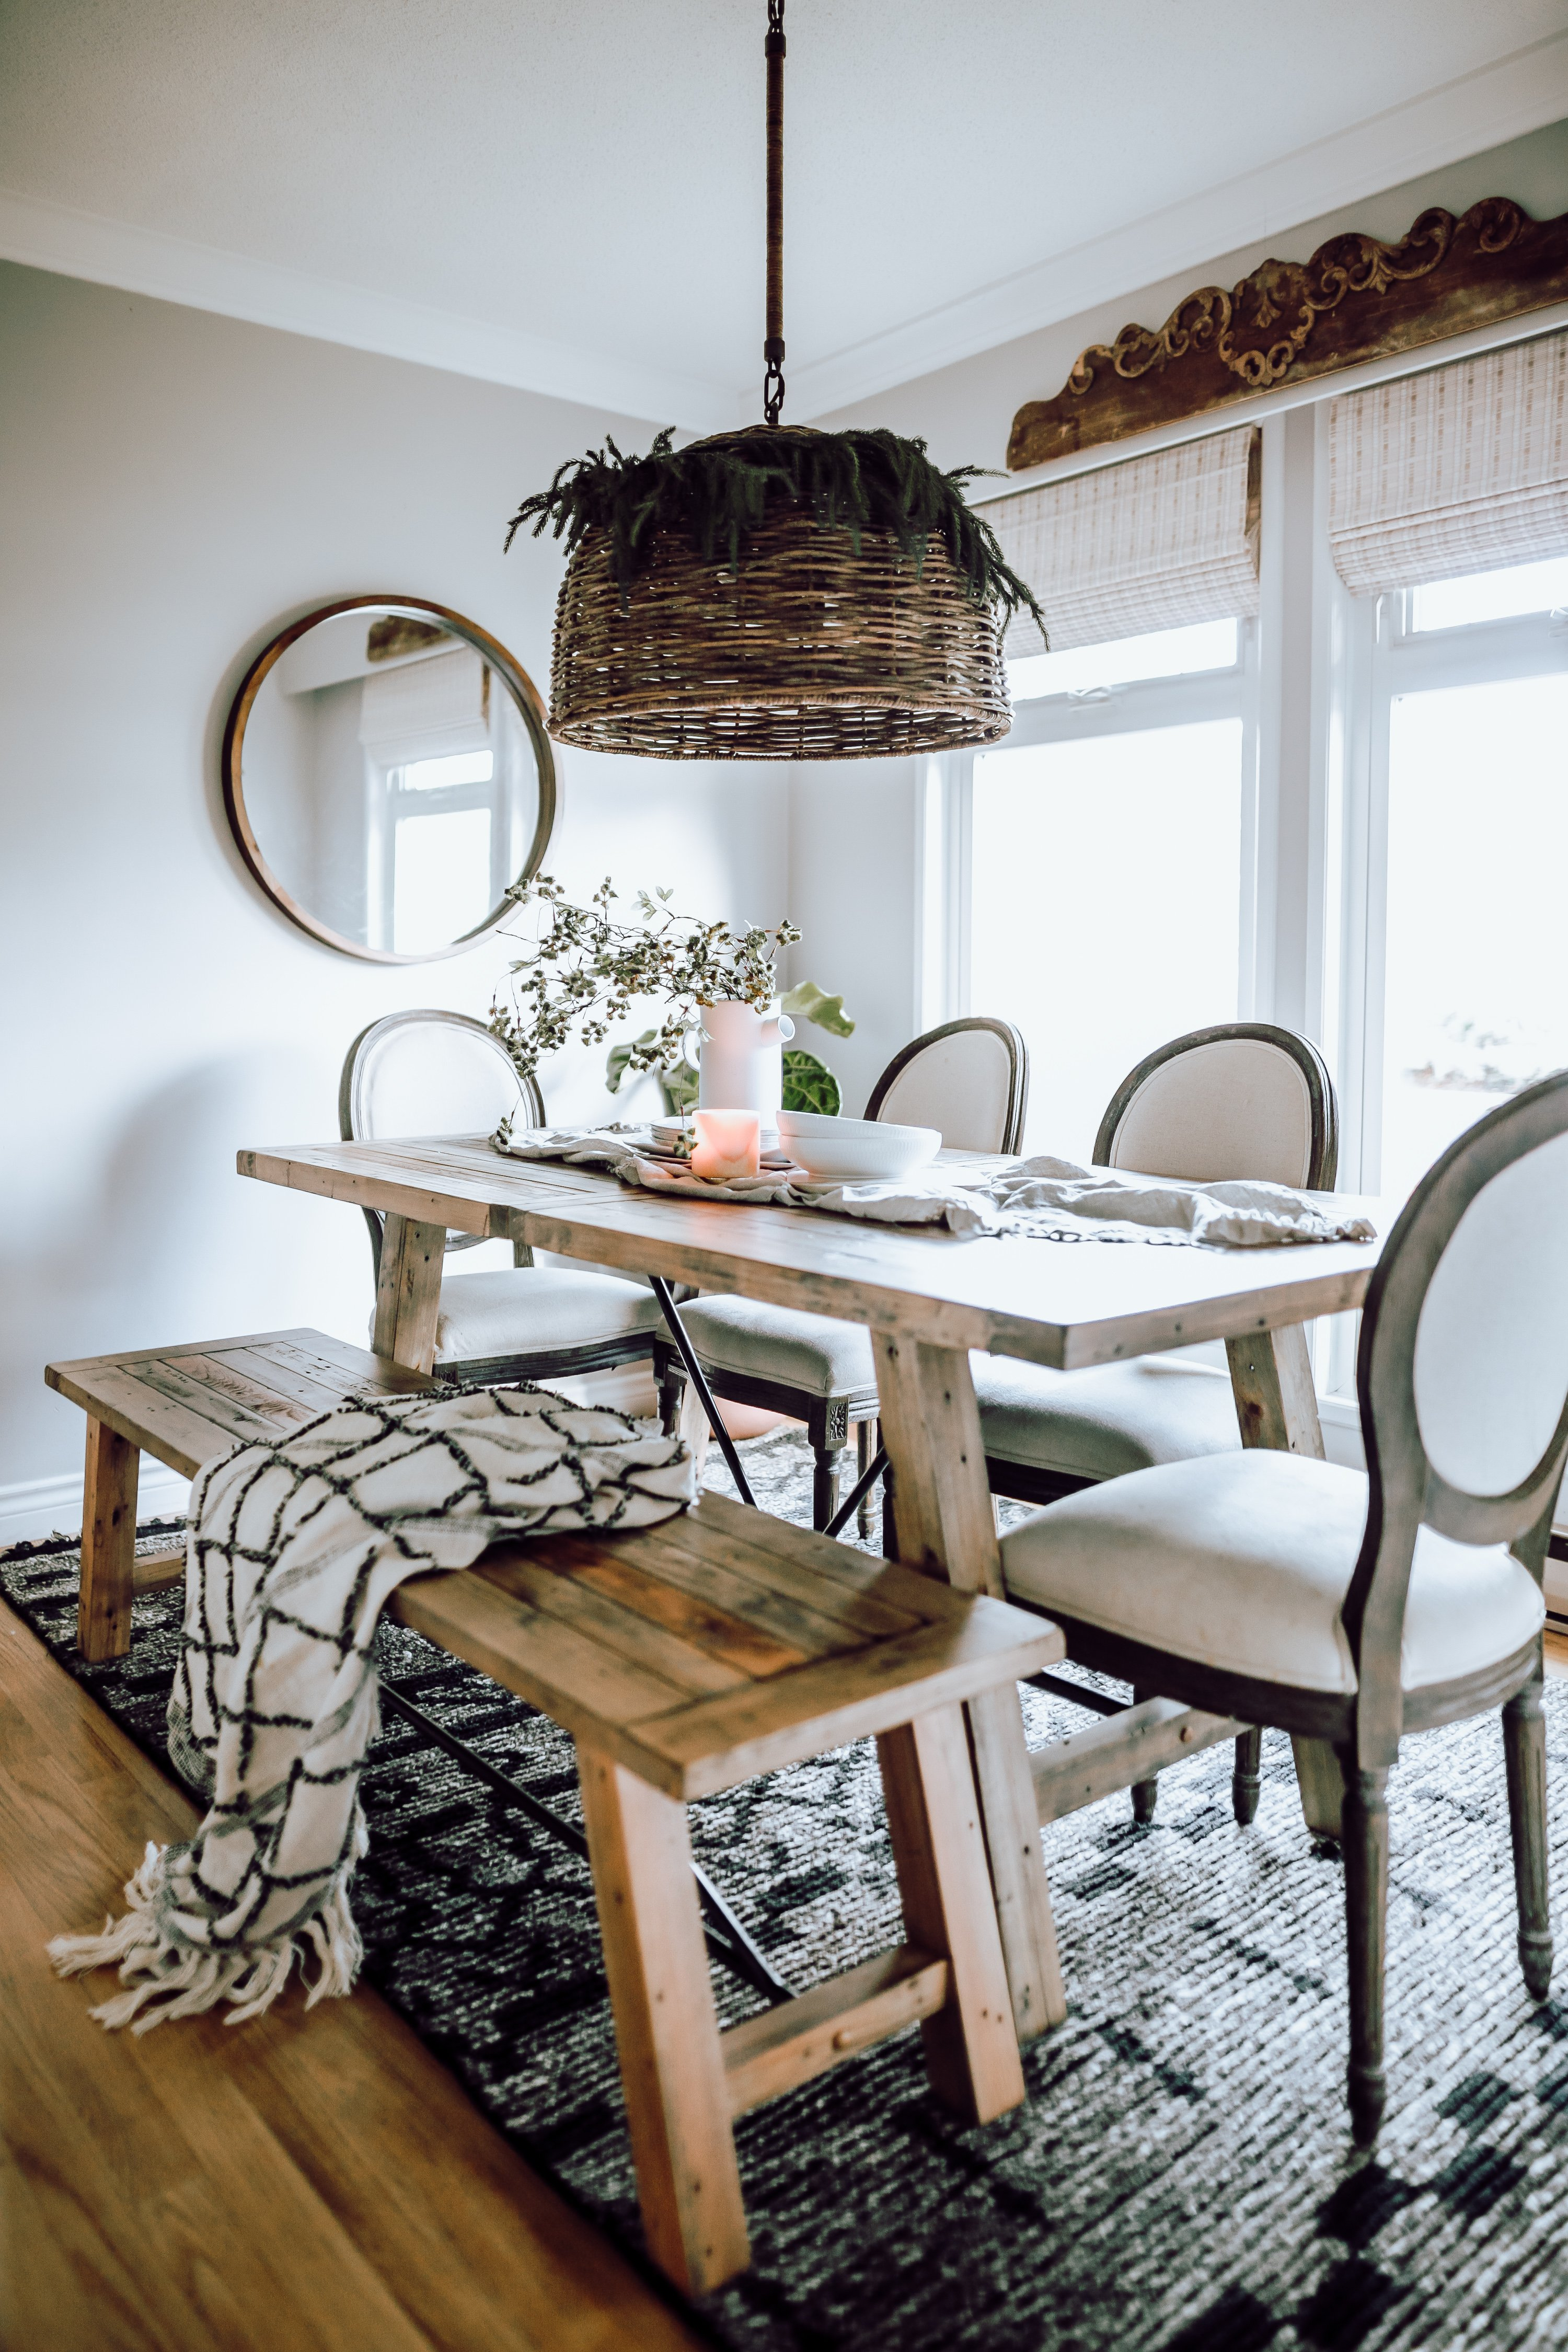 Cozy Dining Room Makeover with Bed Bath and Beyond Canada. Simple changes can change an entire room. Have you ever considered using a black rug to ground your space?